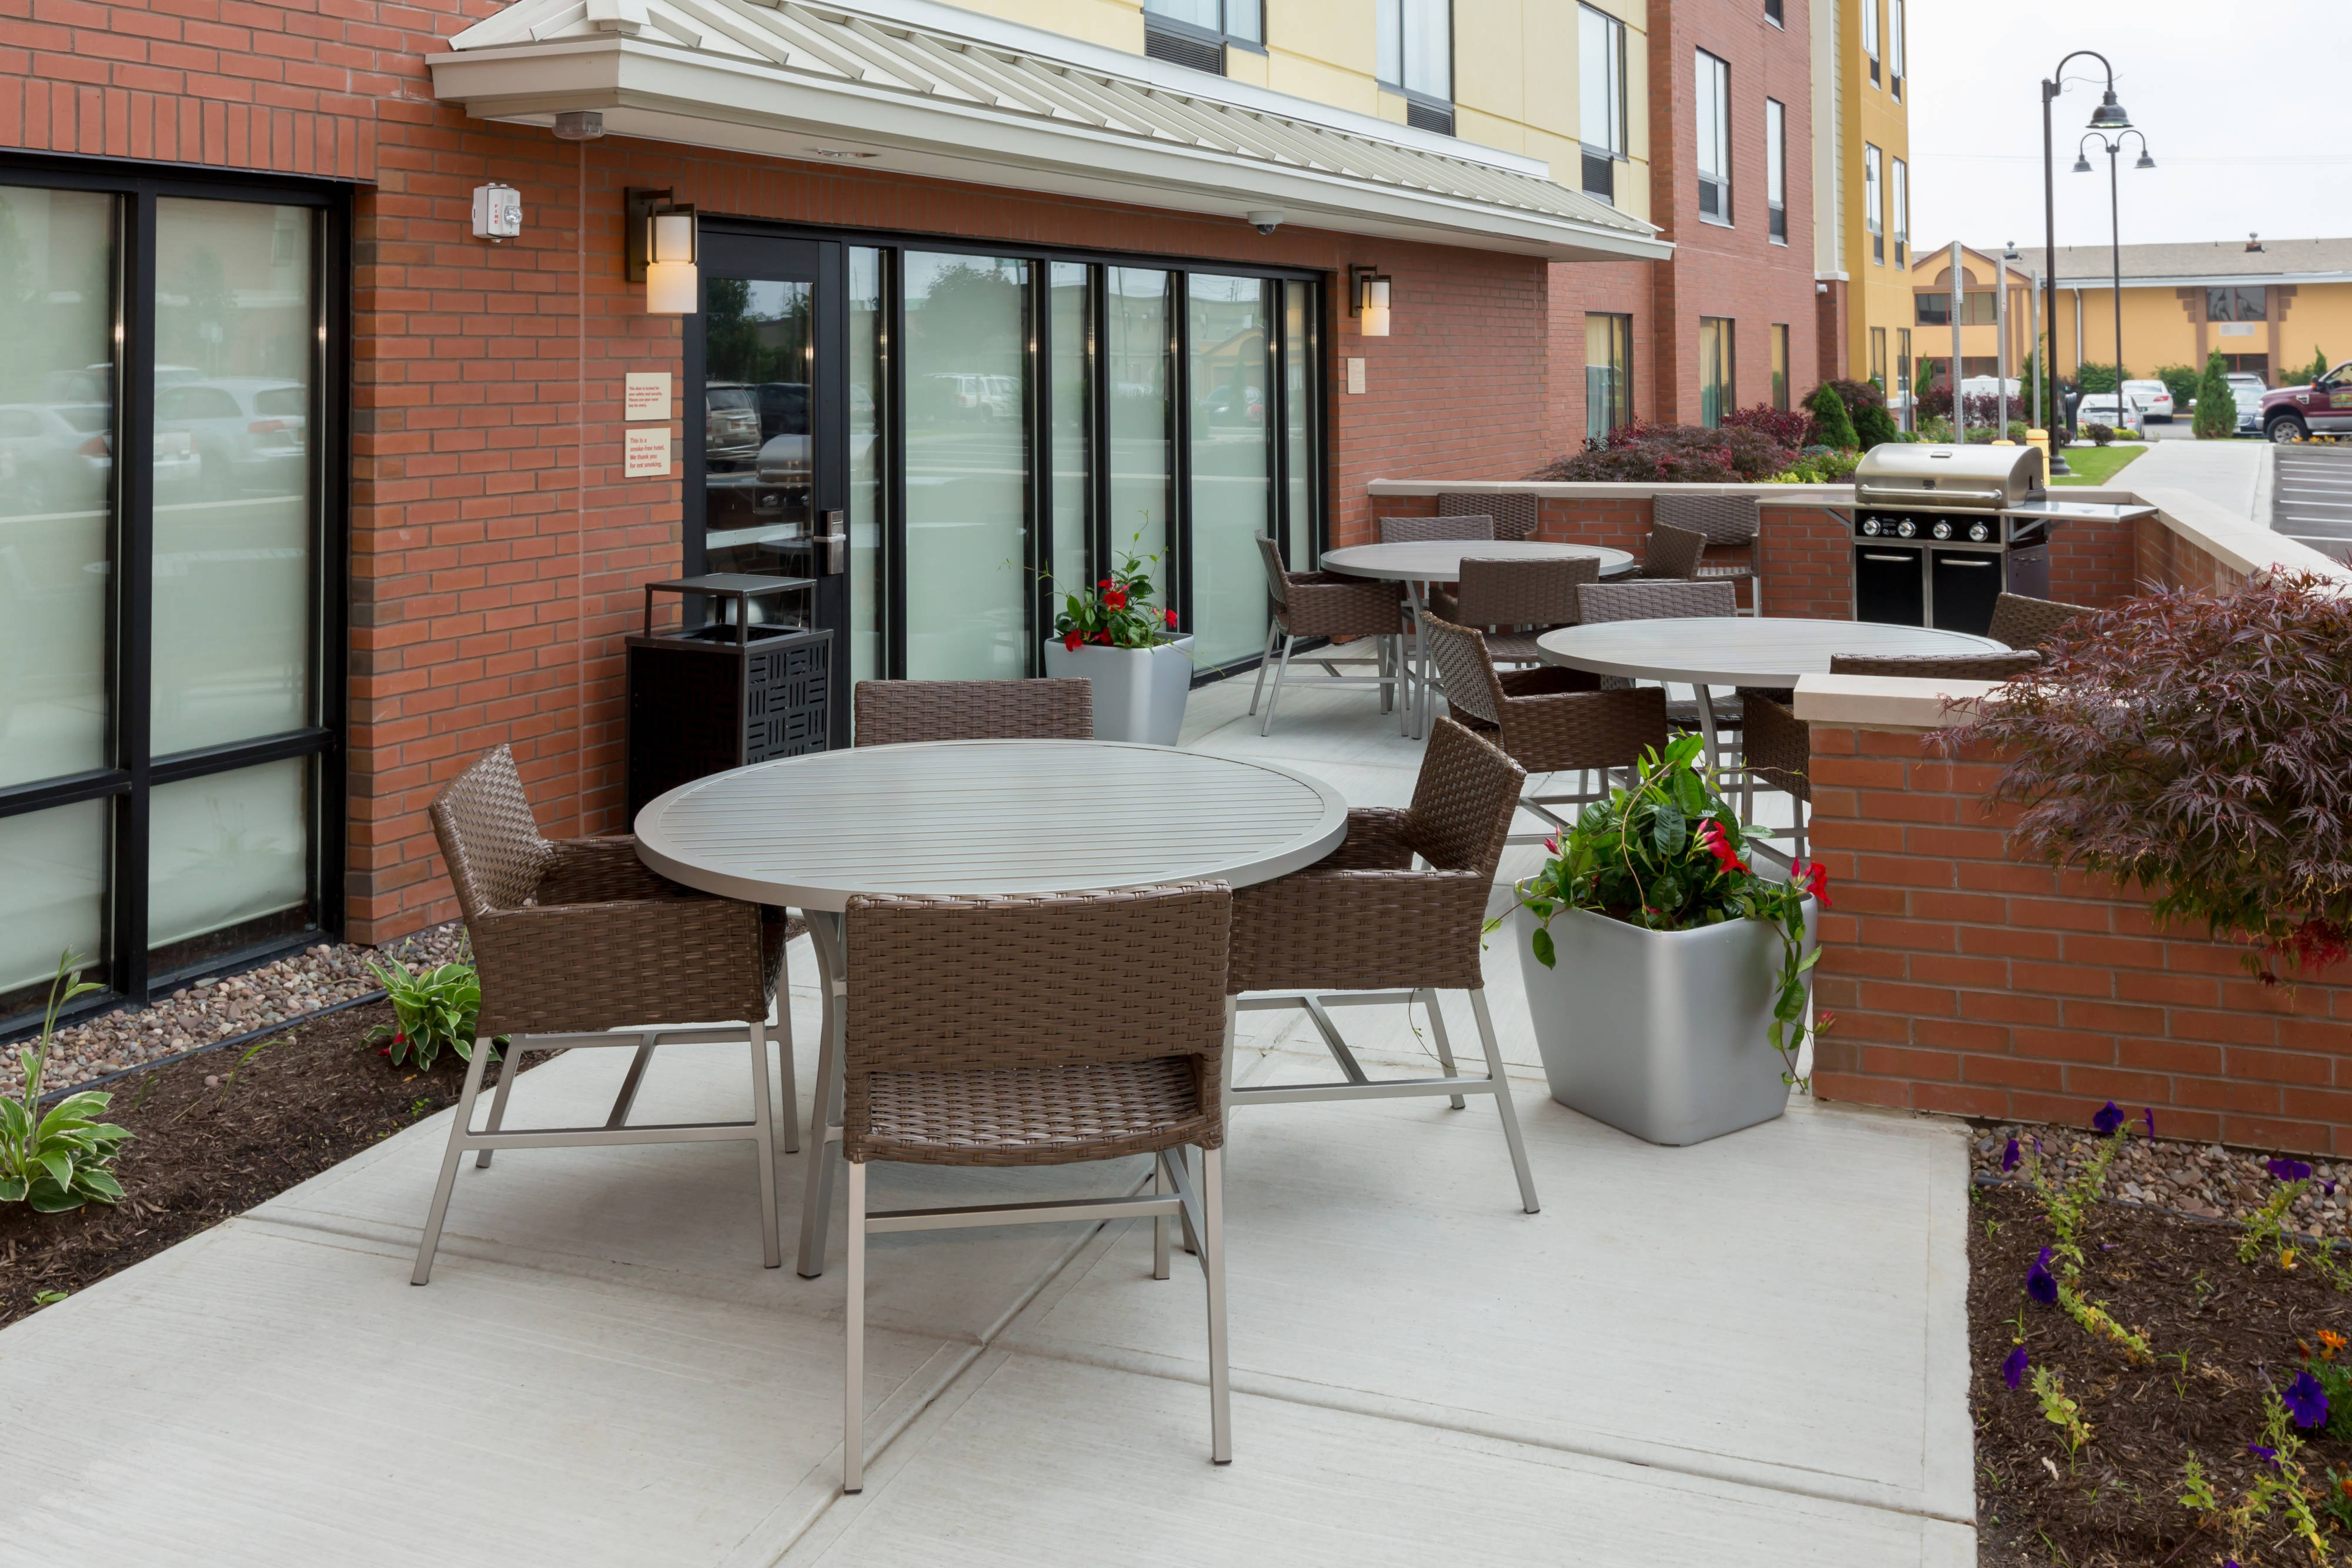 Buffalo Hotel Patio and BBQ